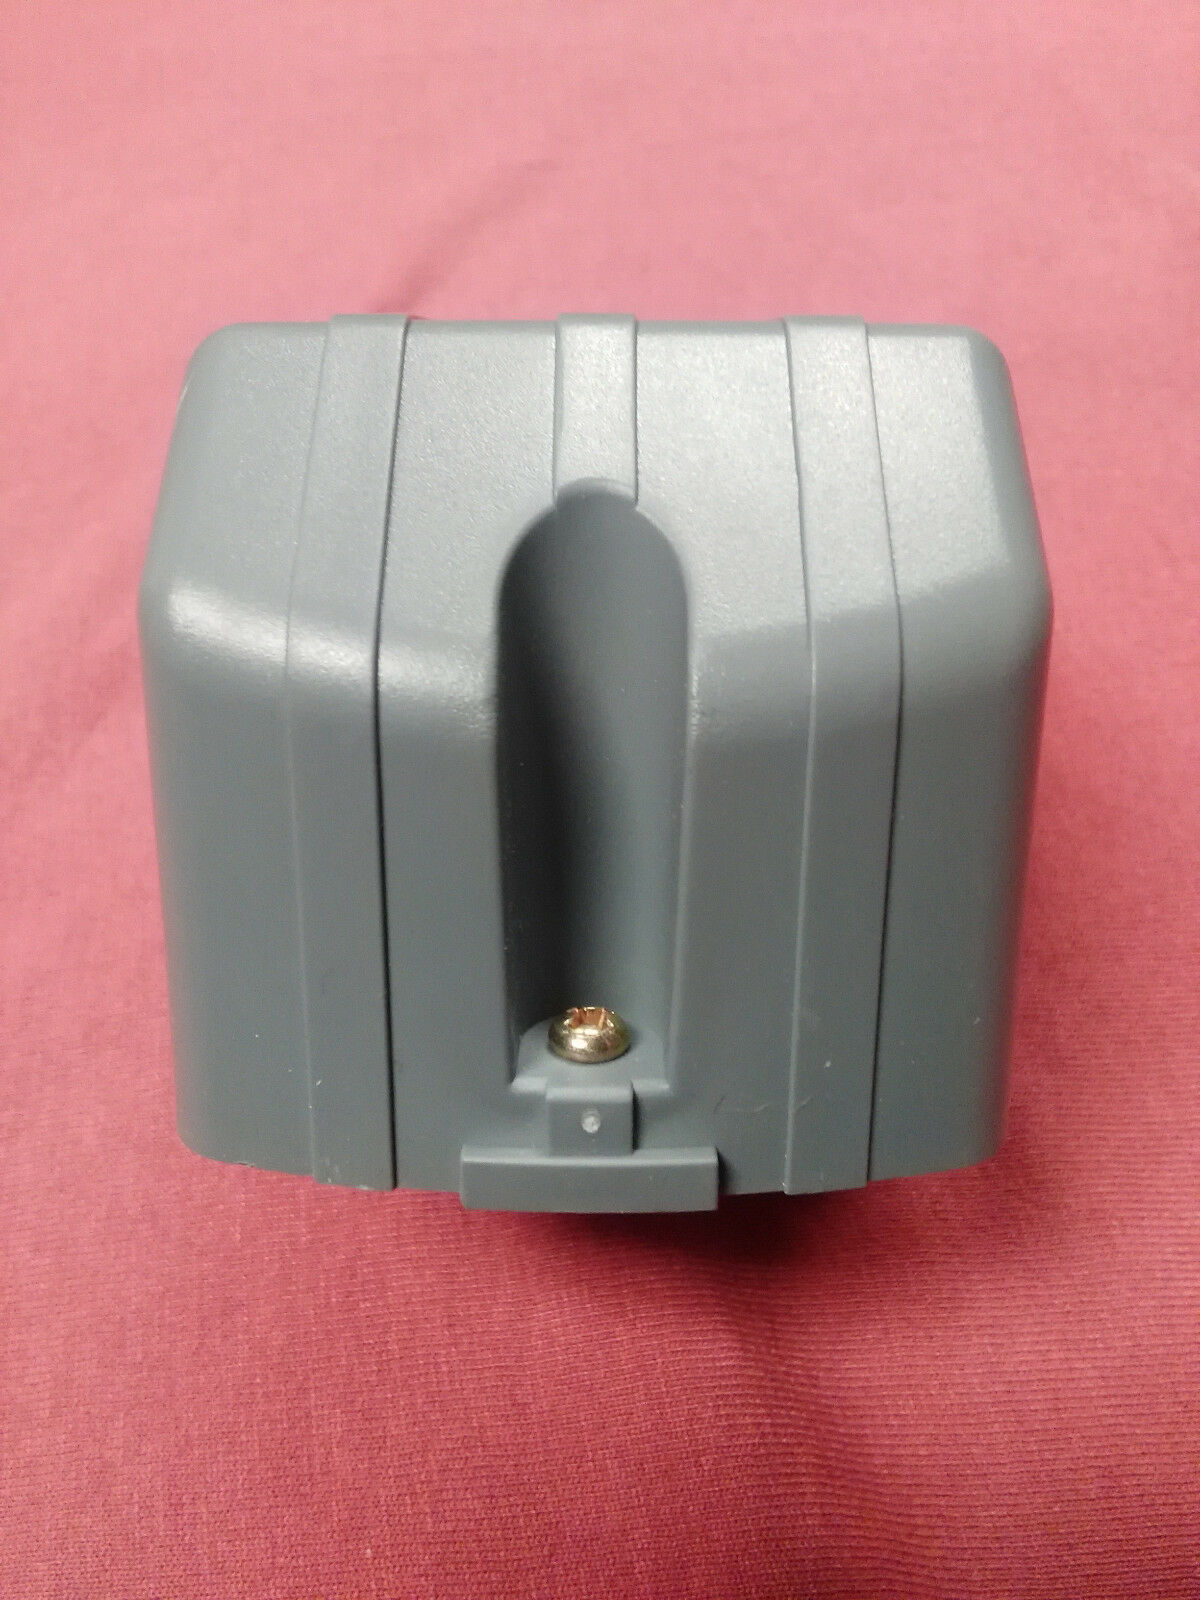 Proplumber Pressure Switch Pps3050 30 50 Psi 74036 Ebay Wiring Diagram